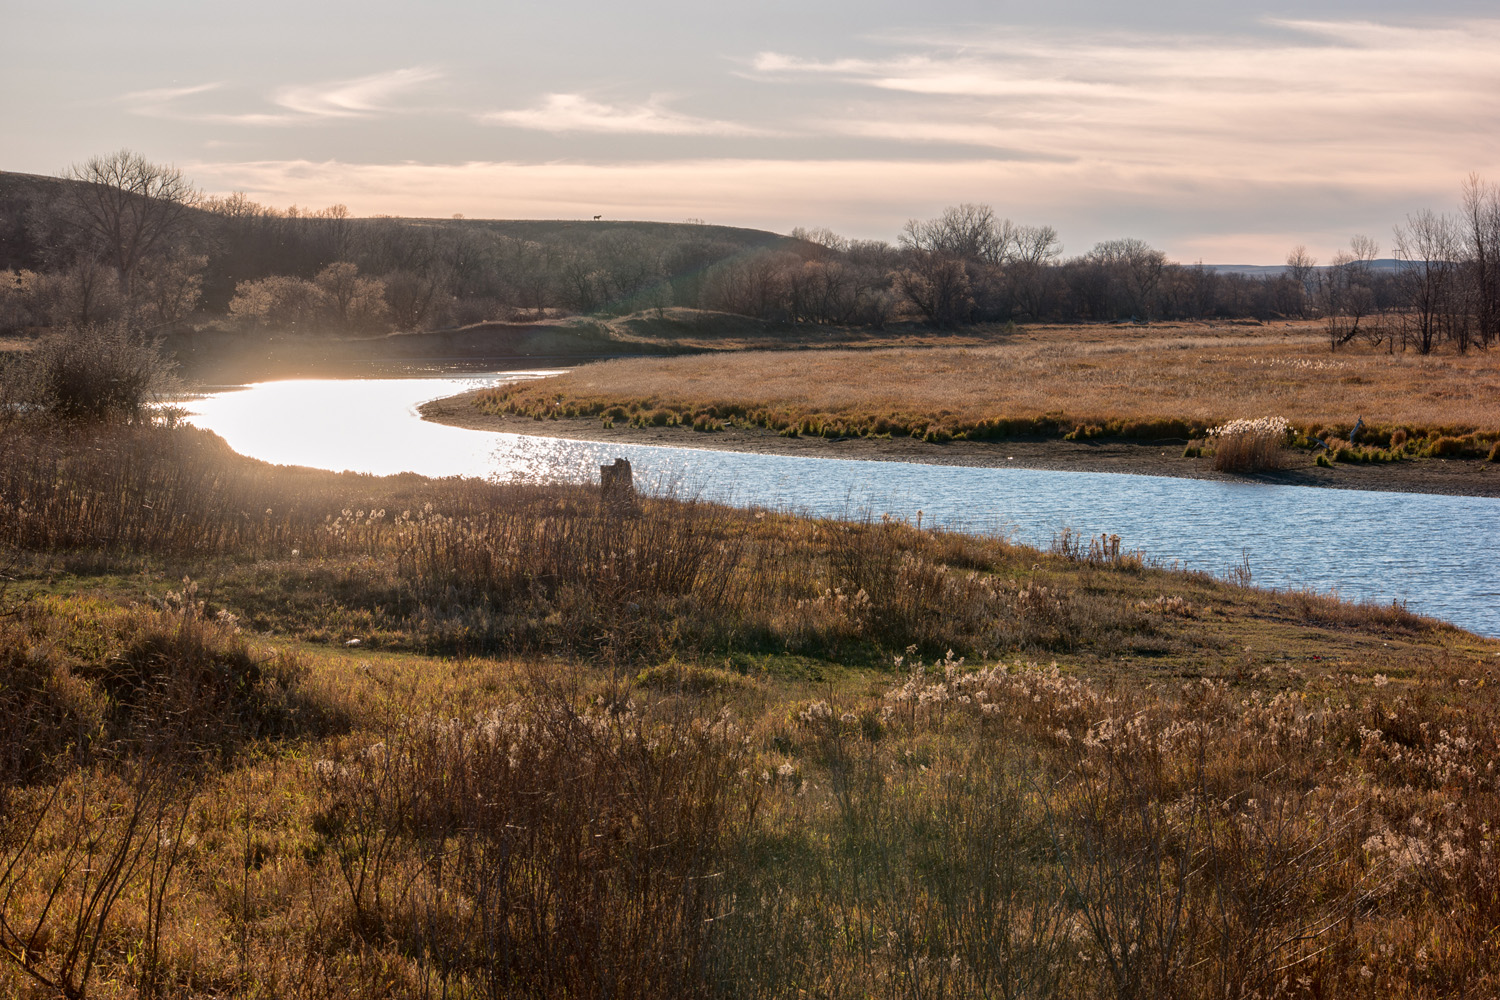 The Cannonball River running through the Standing Rock Sioux Reservation.